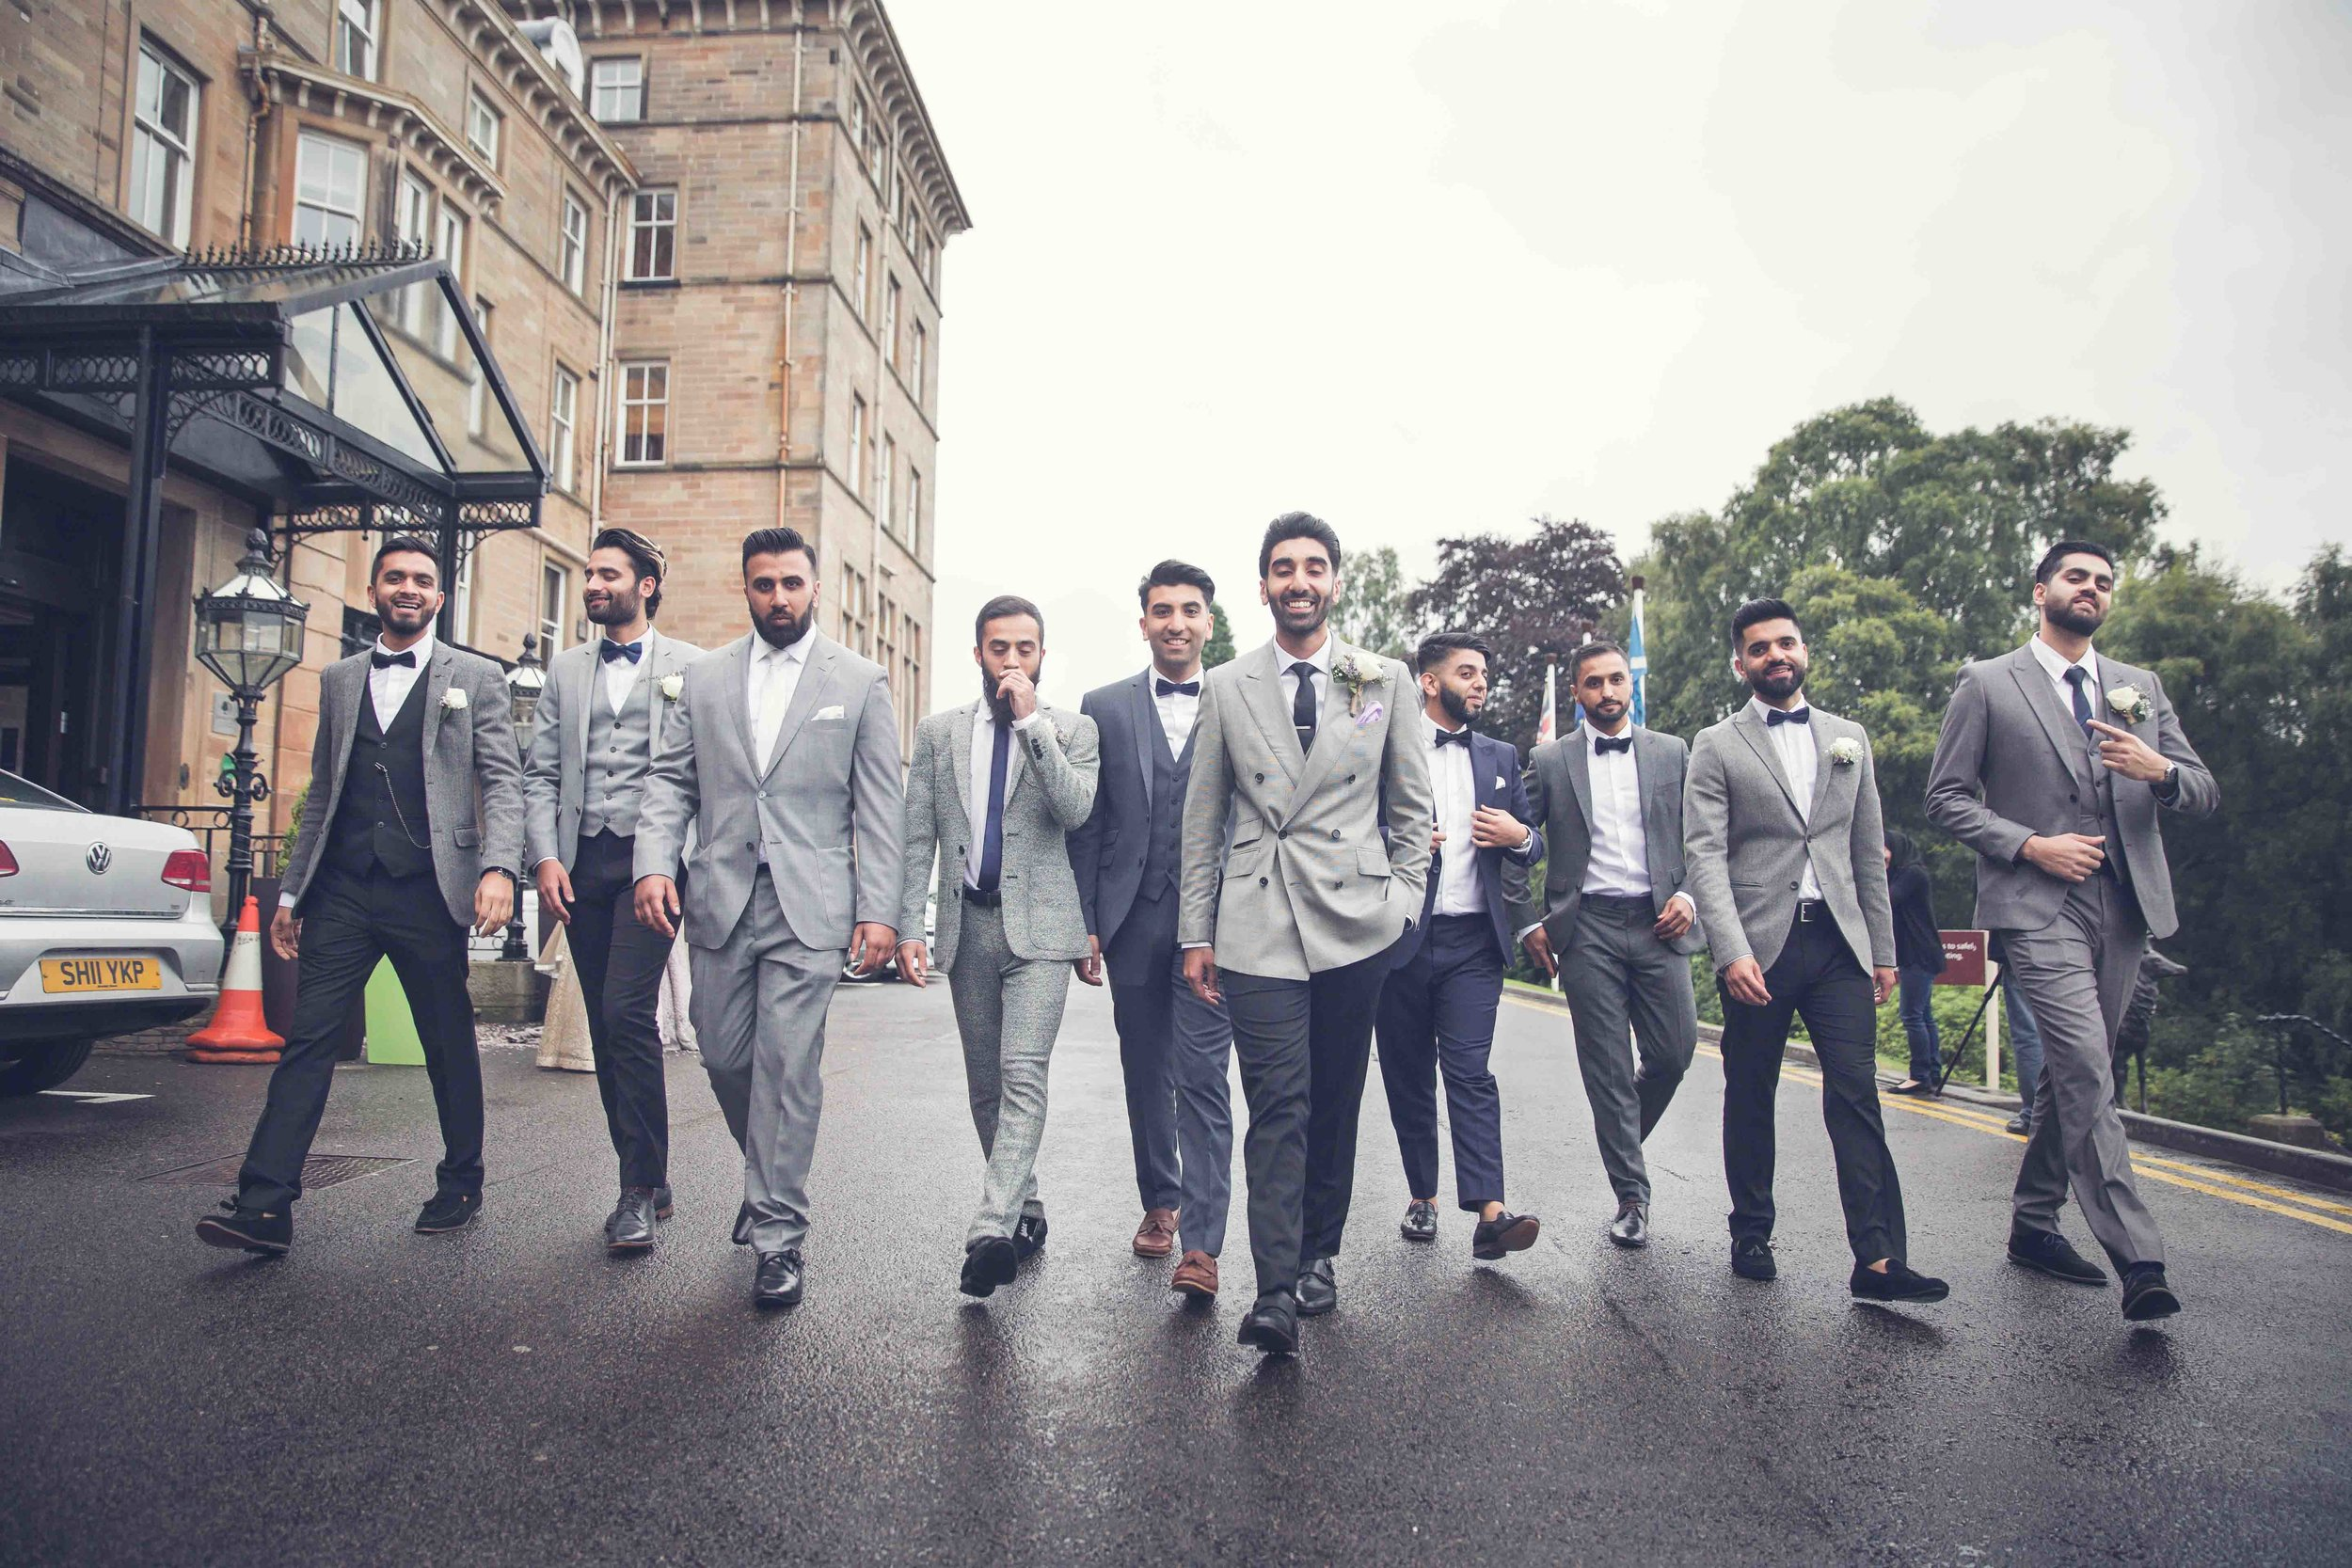 Opu Sultan Photography Asian wedding photography scotland edinburgh glasgow manchester birmingham london-299.jpg